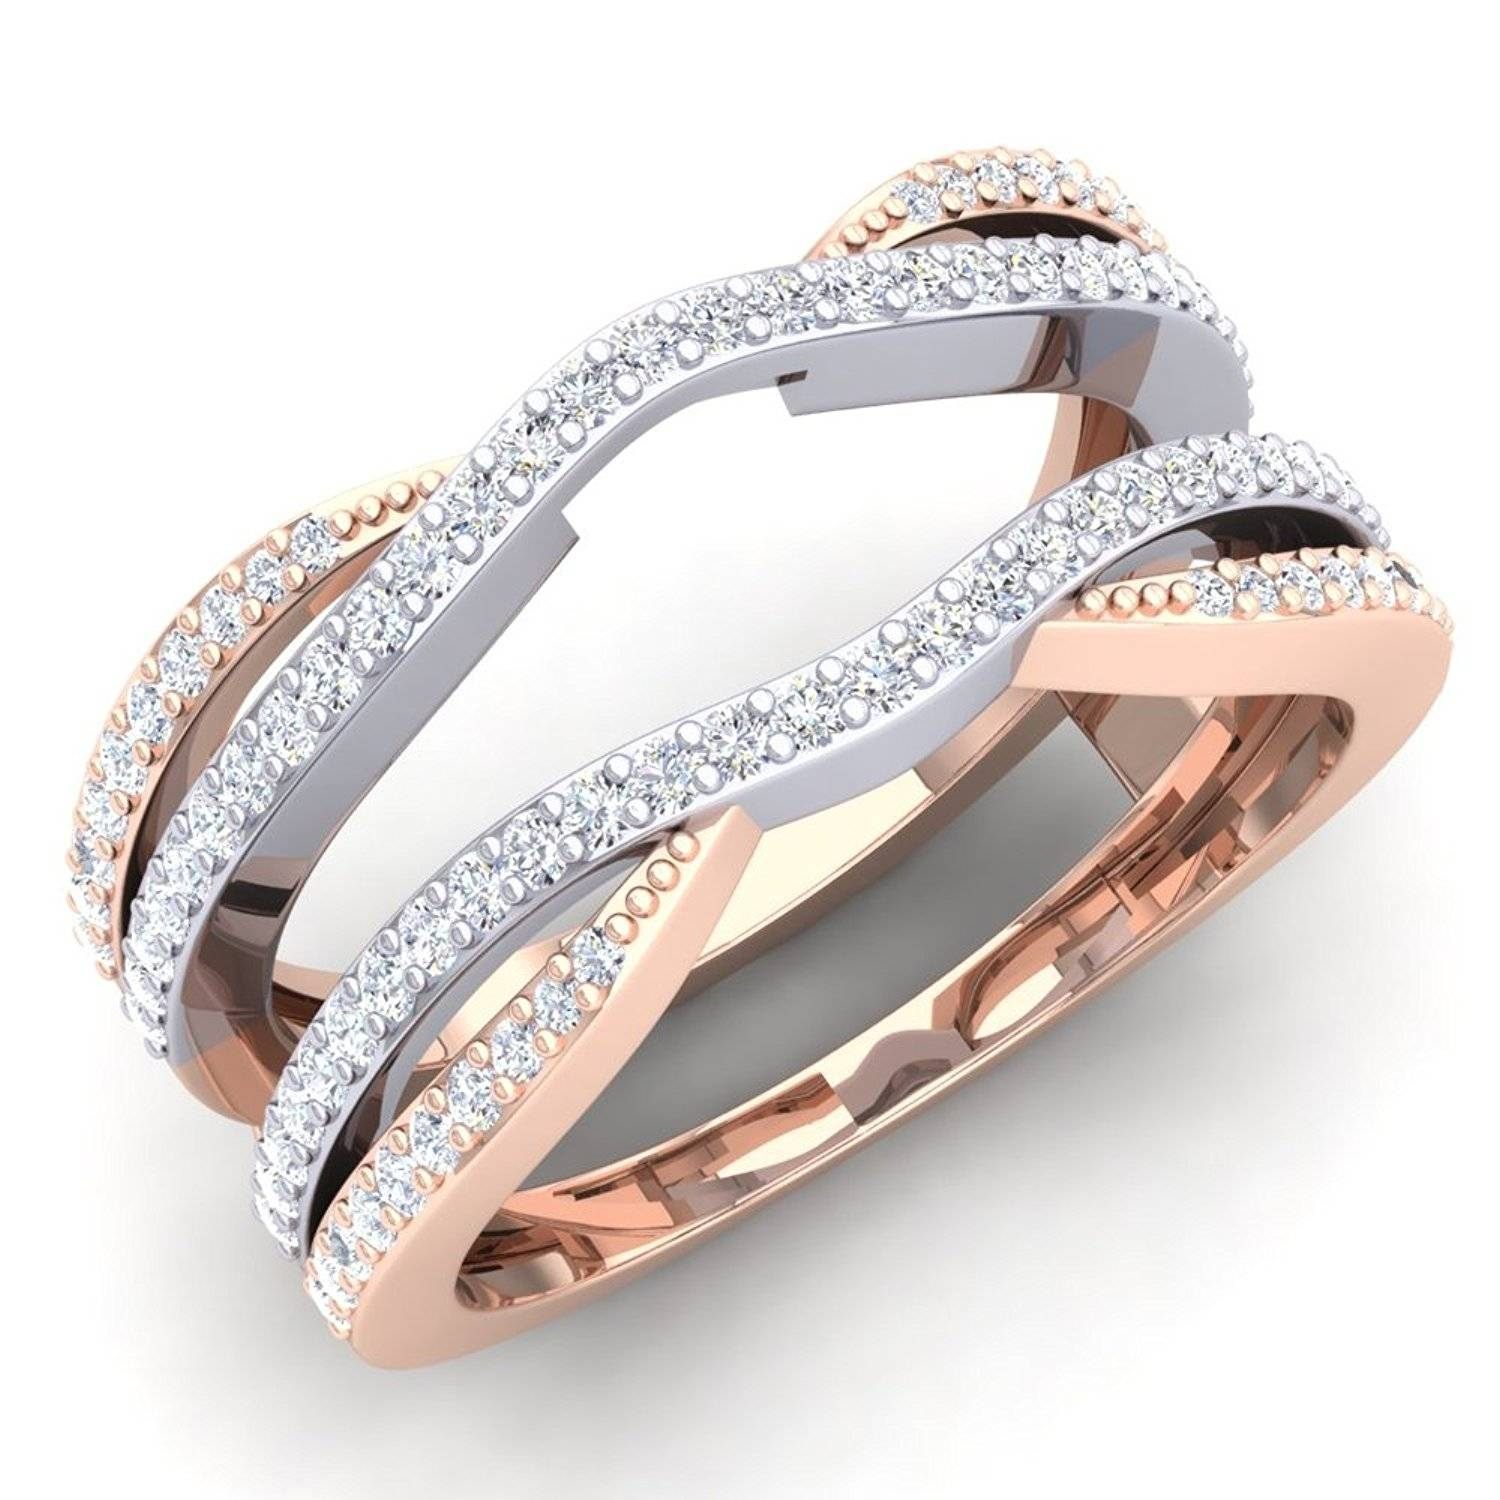 Ring Unique Wedding Rings Without Diamonds Morganite And Diamond Throughout Wedding Rings Without Diamonds (View 14 of 15)